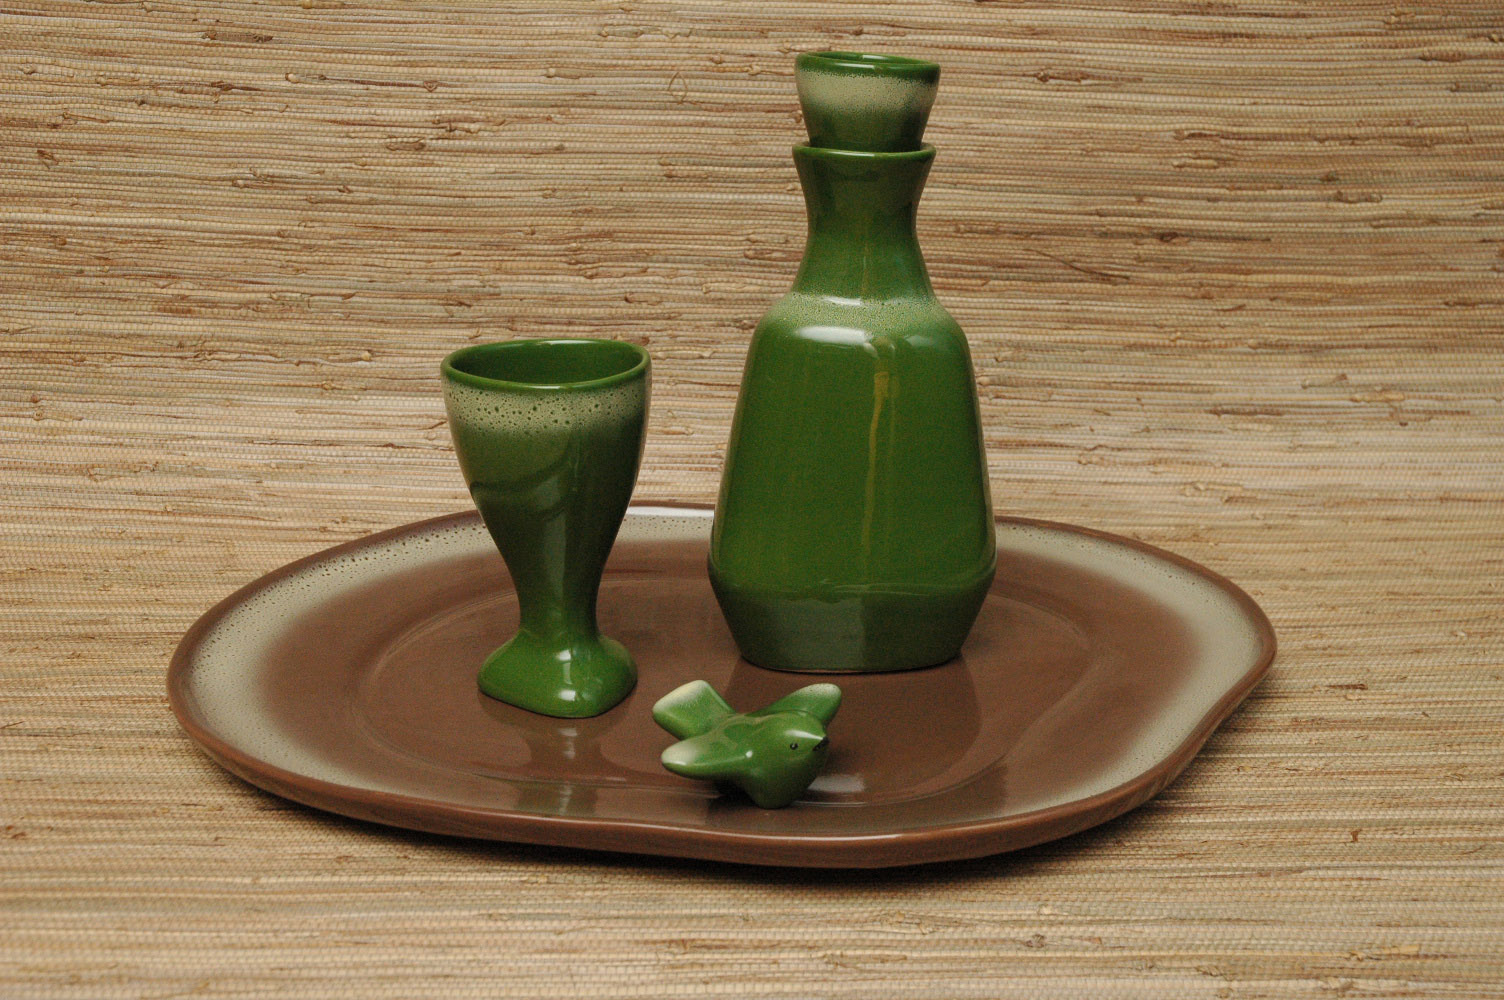 Wine goblet and decanter